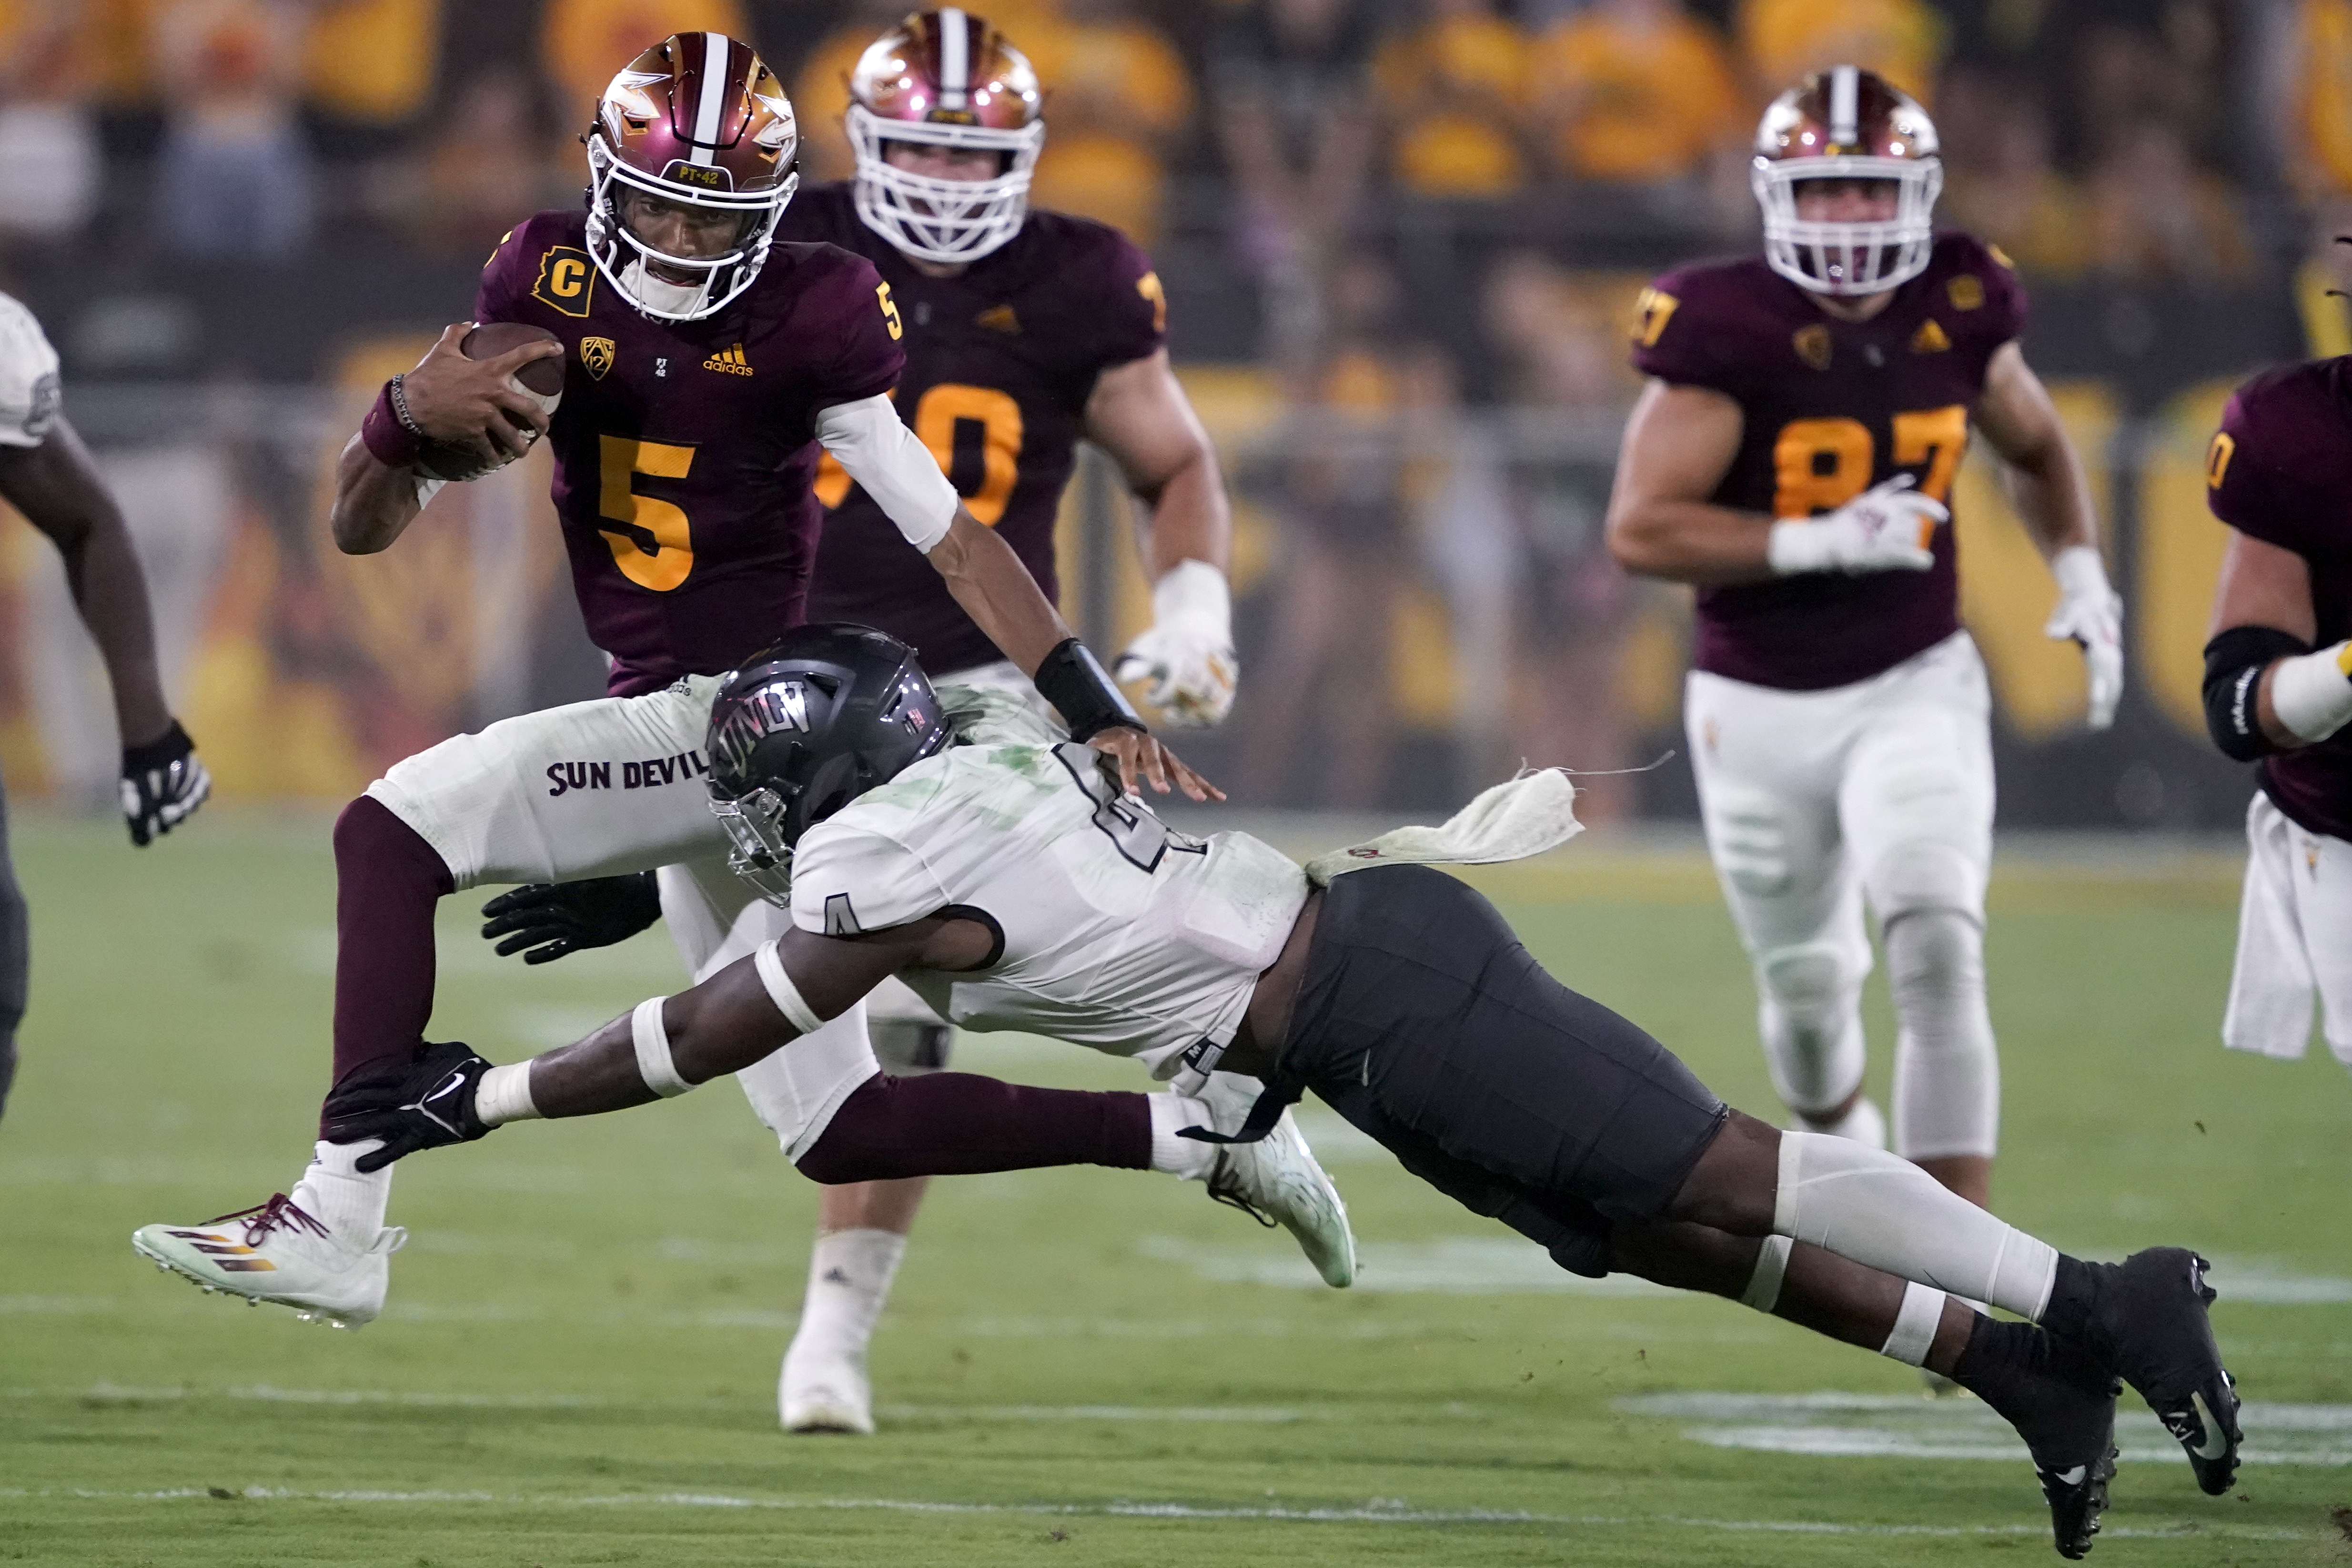 Arizona State quarterback Jayden Daniels avoids the tackle of UNLV player during game Sept. 11, 2021, in Tempe, Ariz.